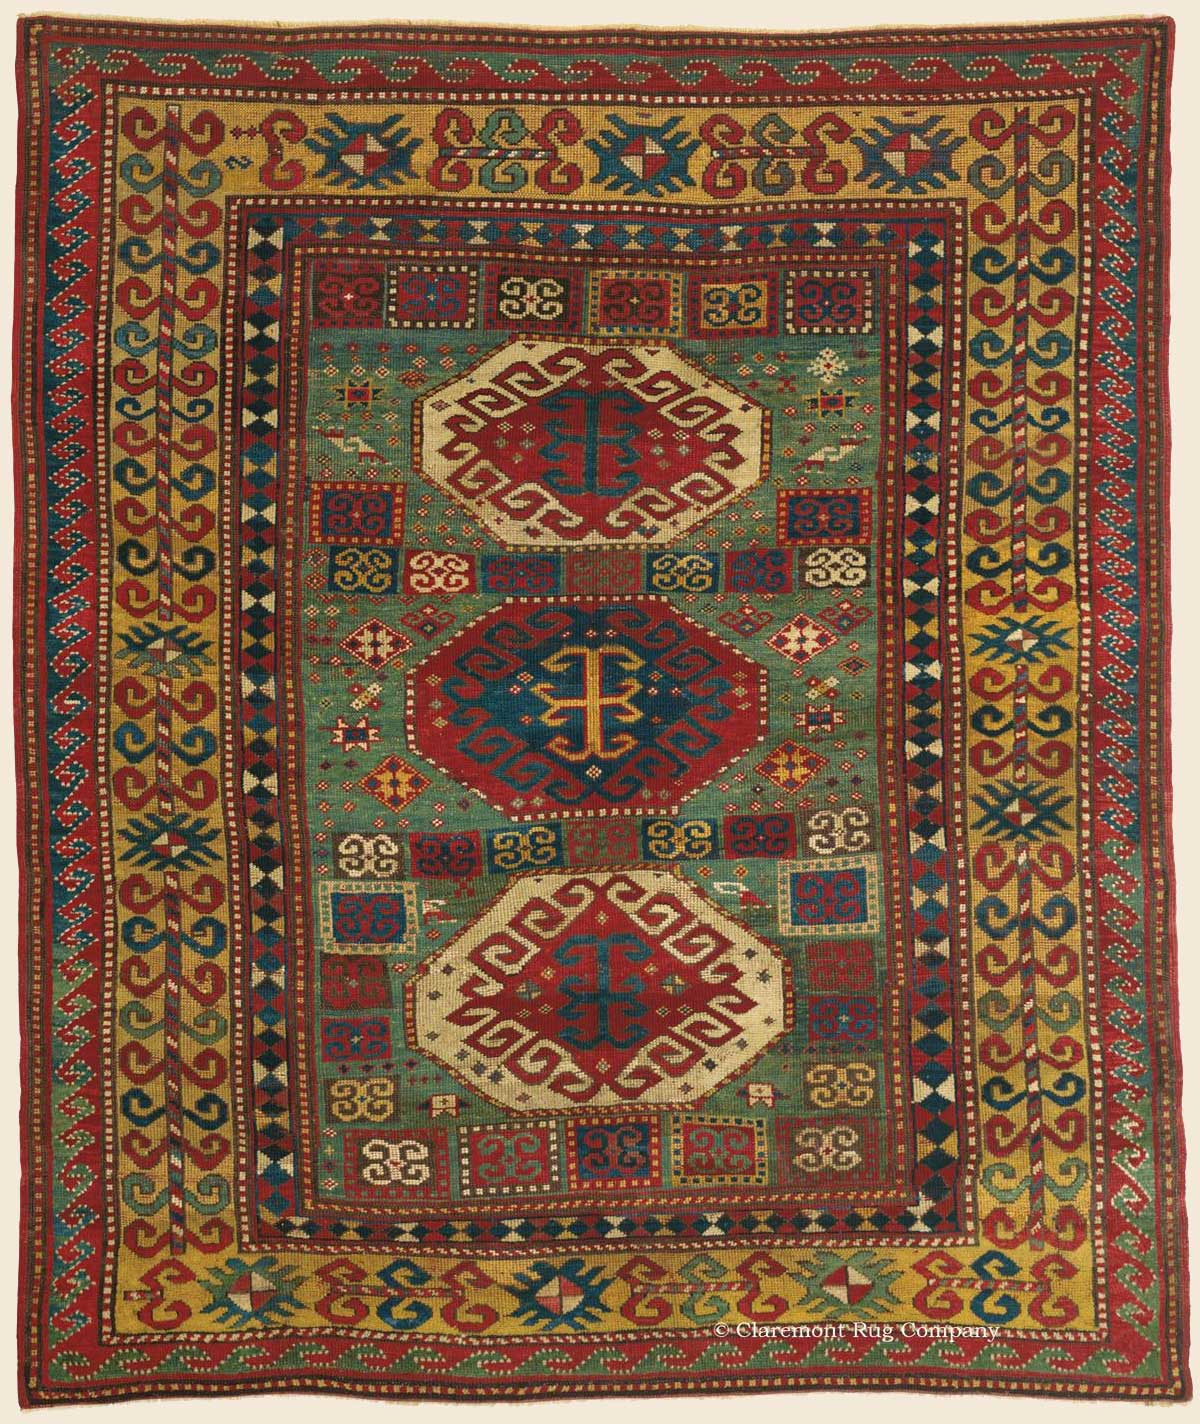 Flooring Companies Bay Area: BORDJALOU KAZAK, Southeast Caucasian Antique Rug